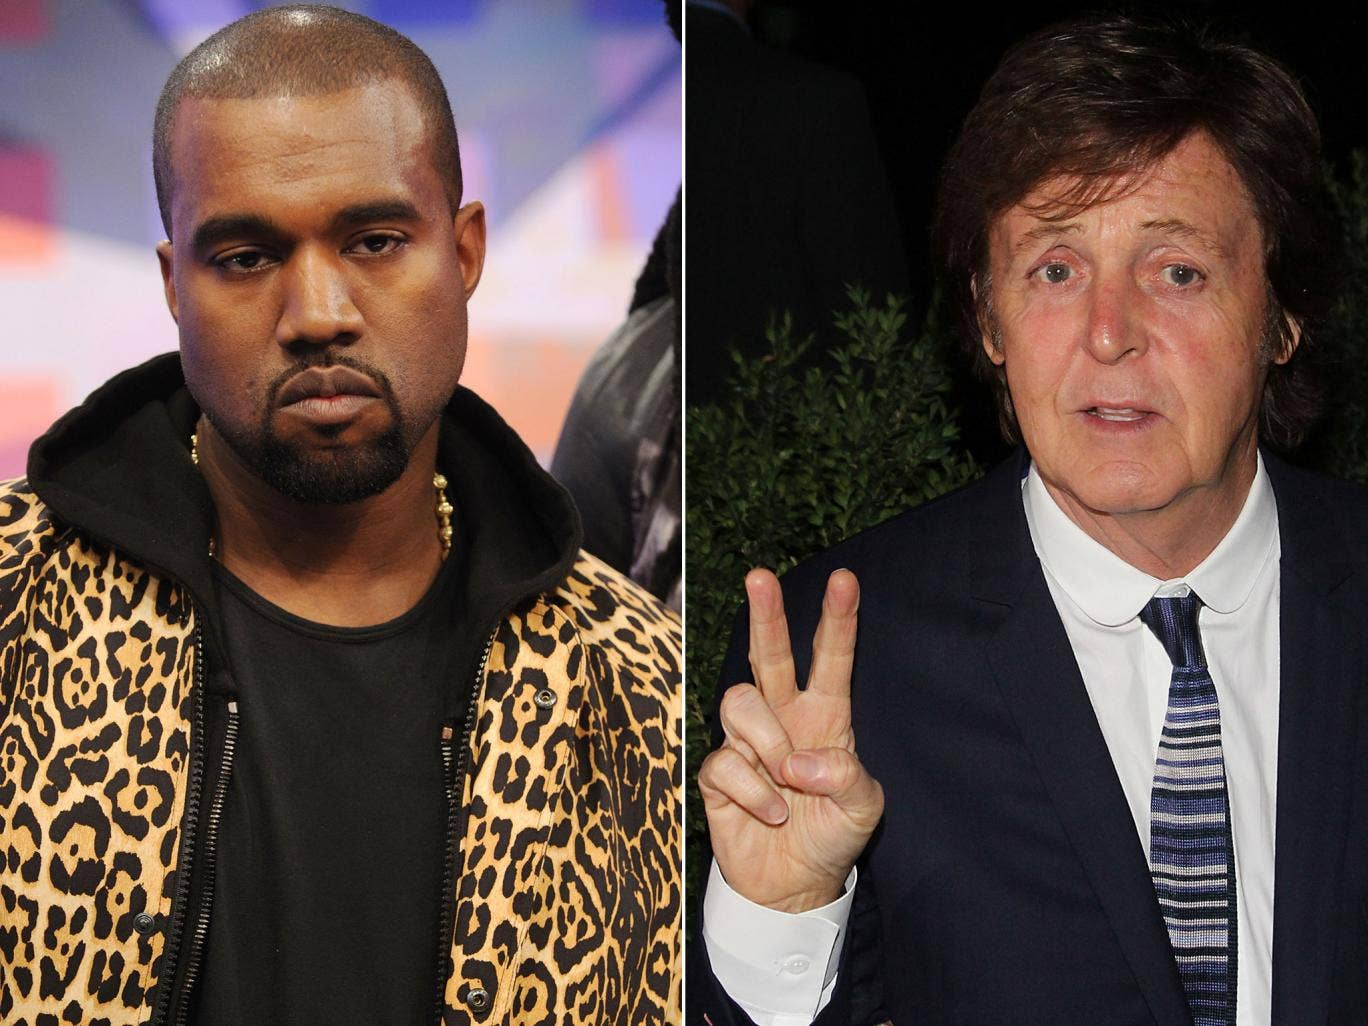 Could it be? Kanye West and Paul McCartney are reportedly teaming up for the most unlikely collaboration ever